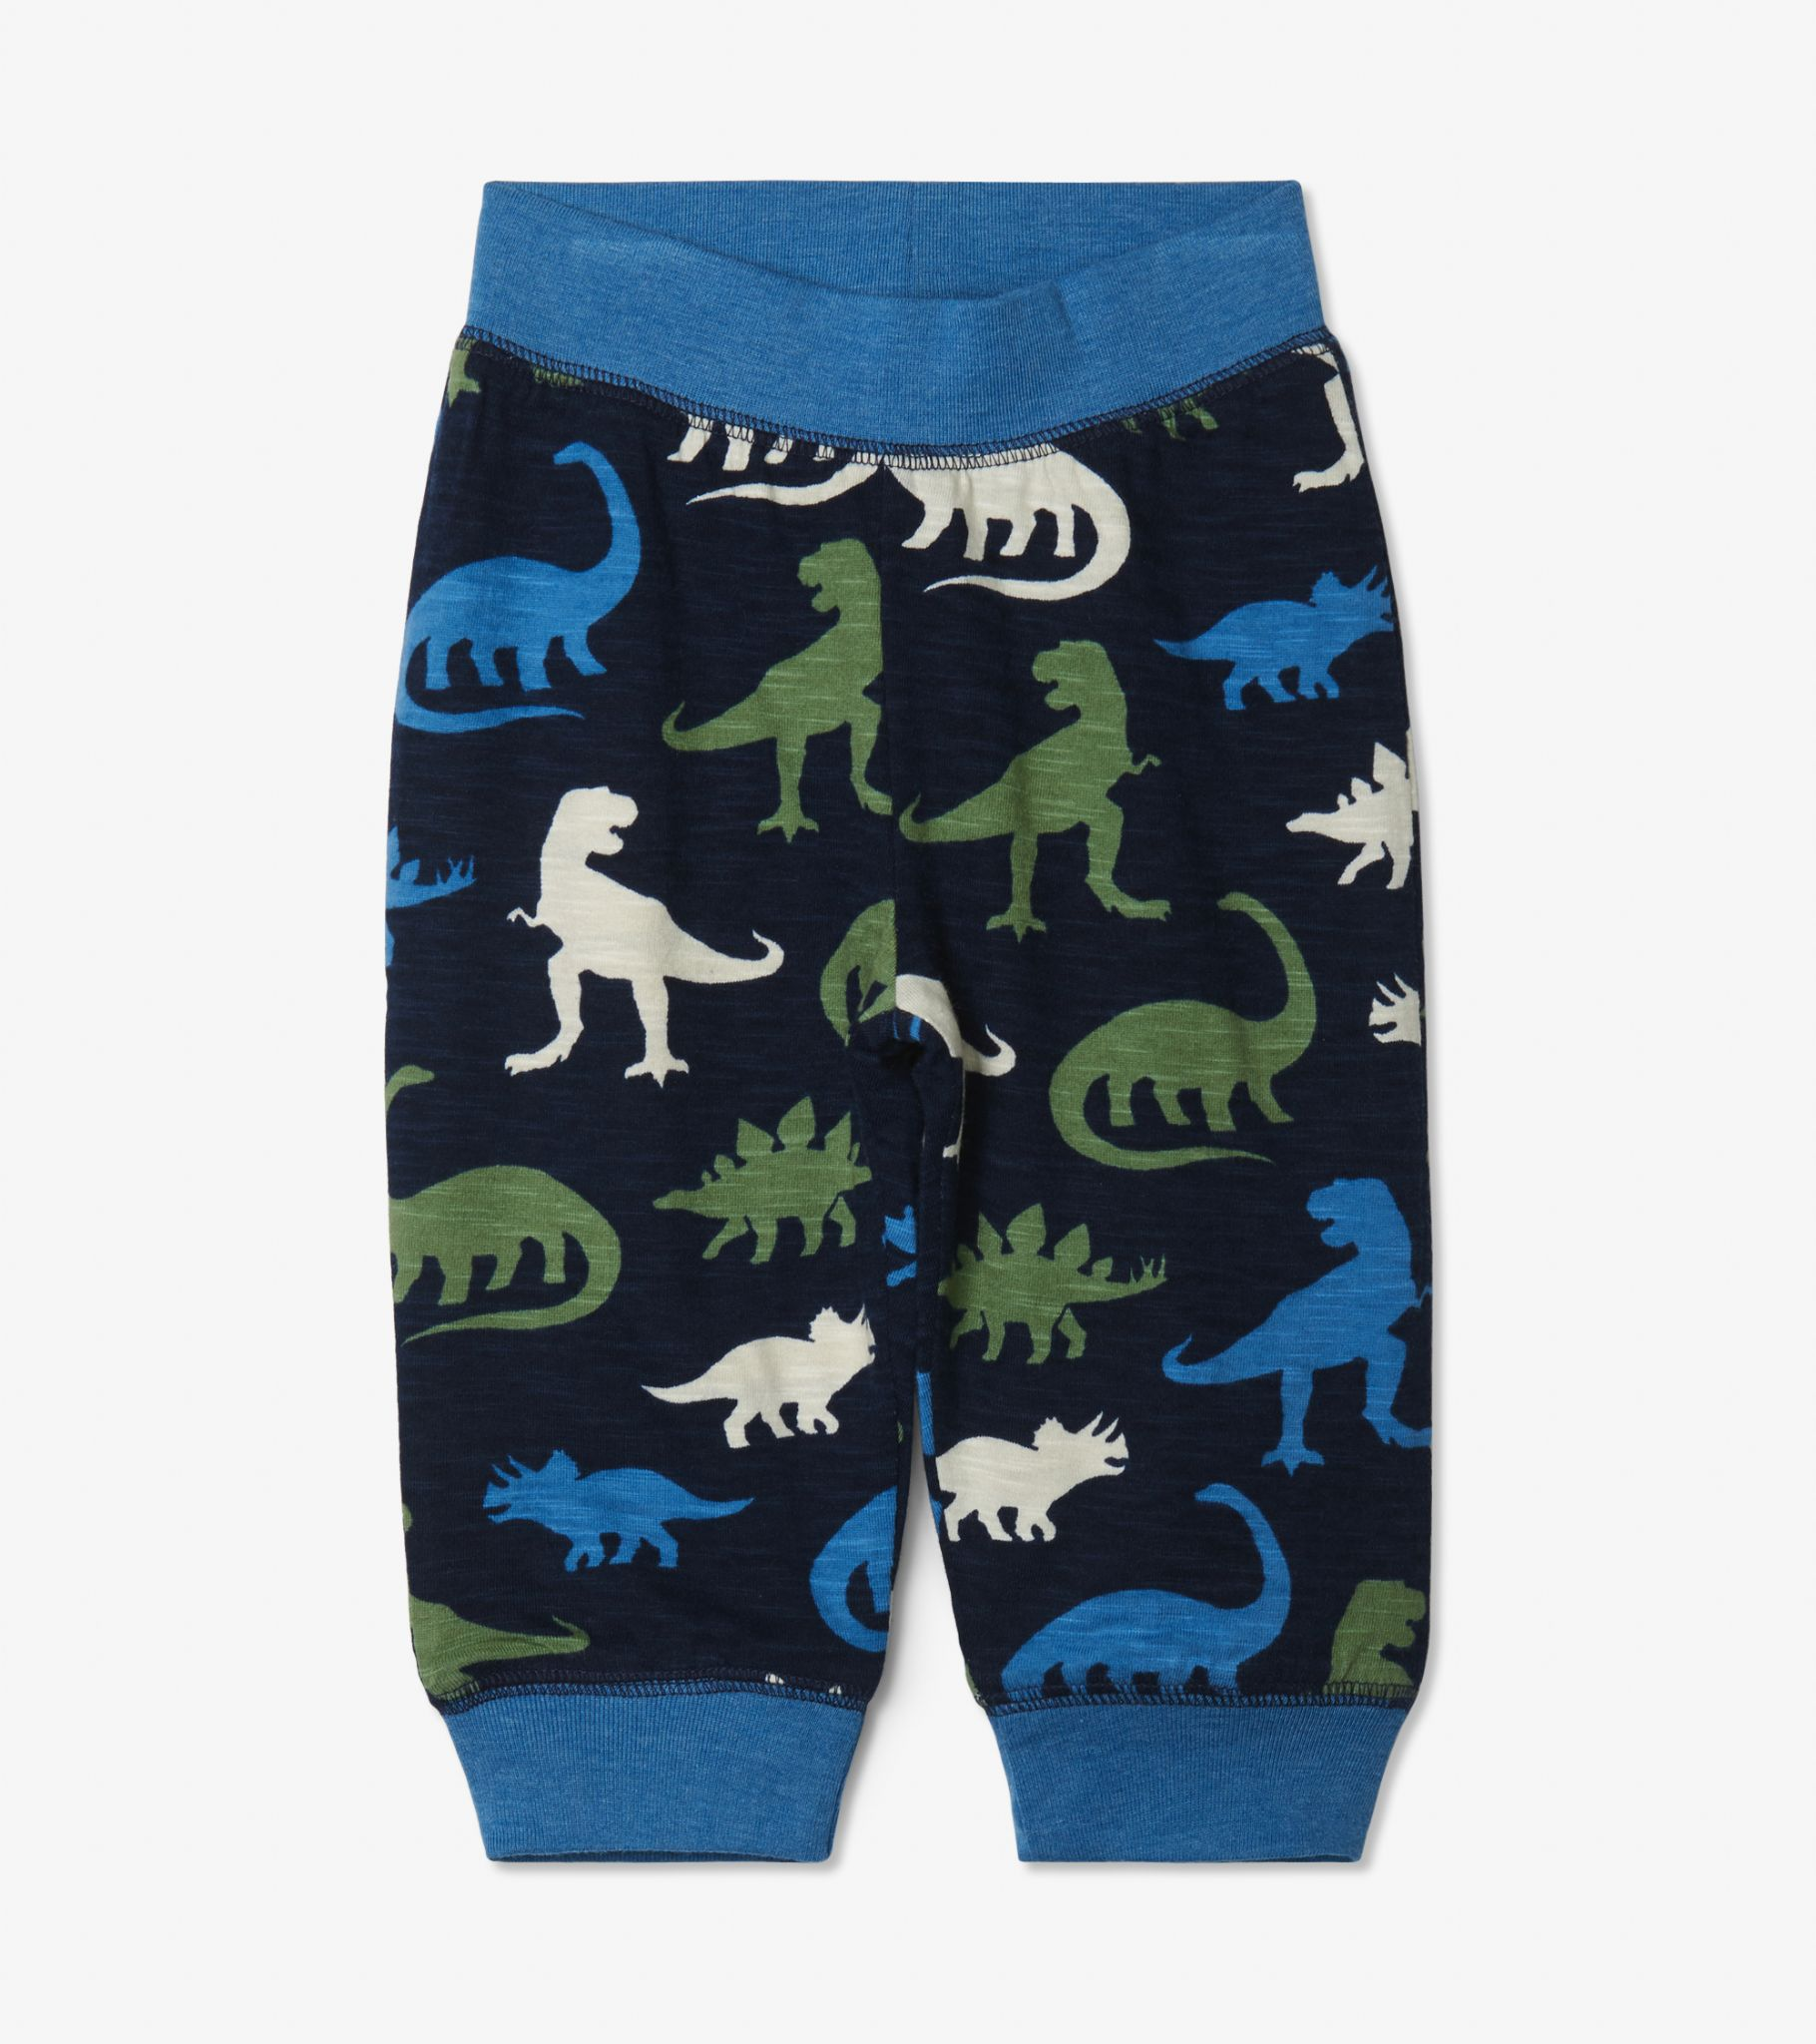 SALE £17.60 Hatley Silhouette Dino Baby Jogger (was £22.00)